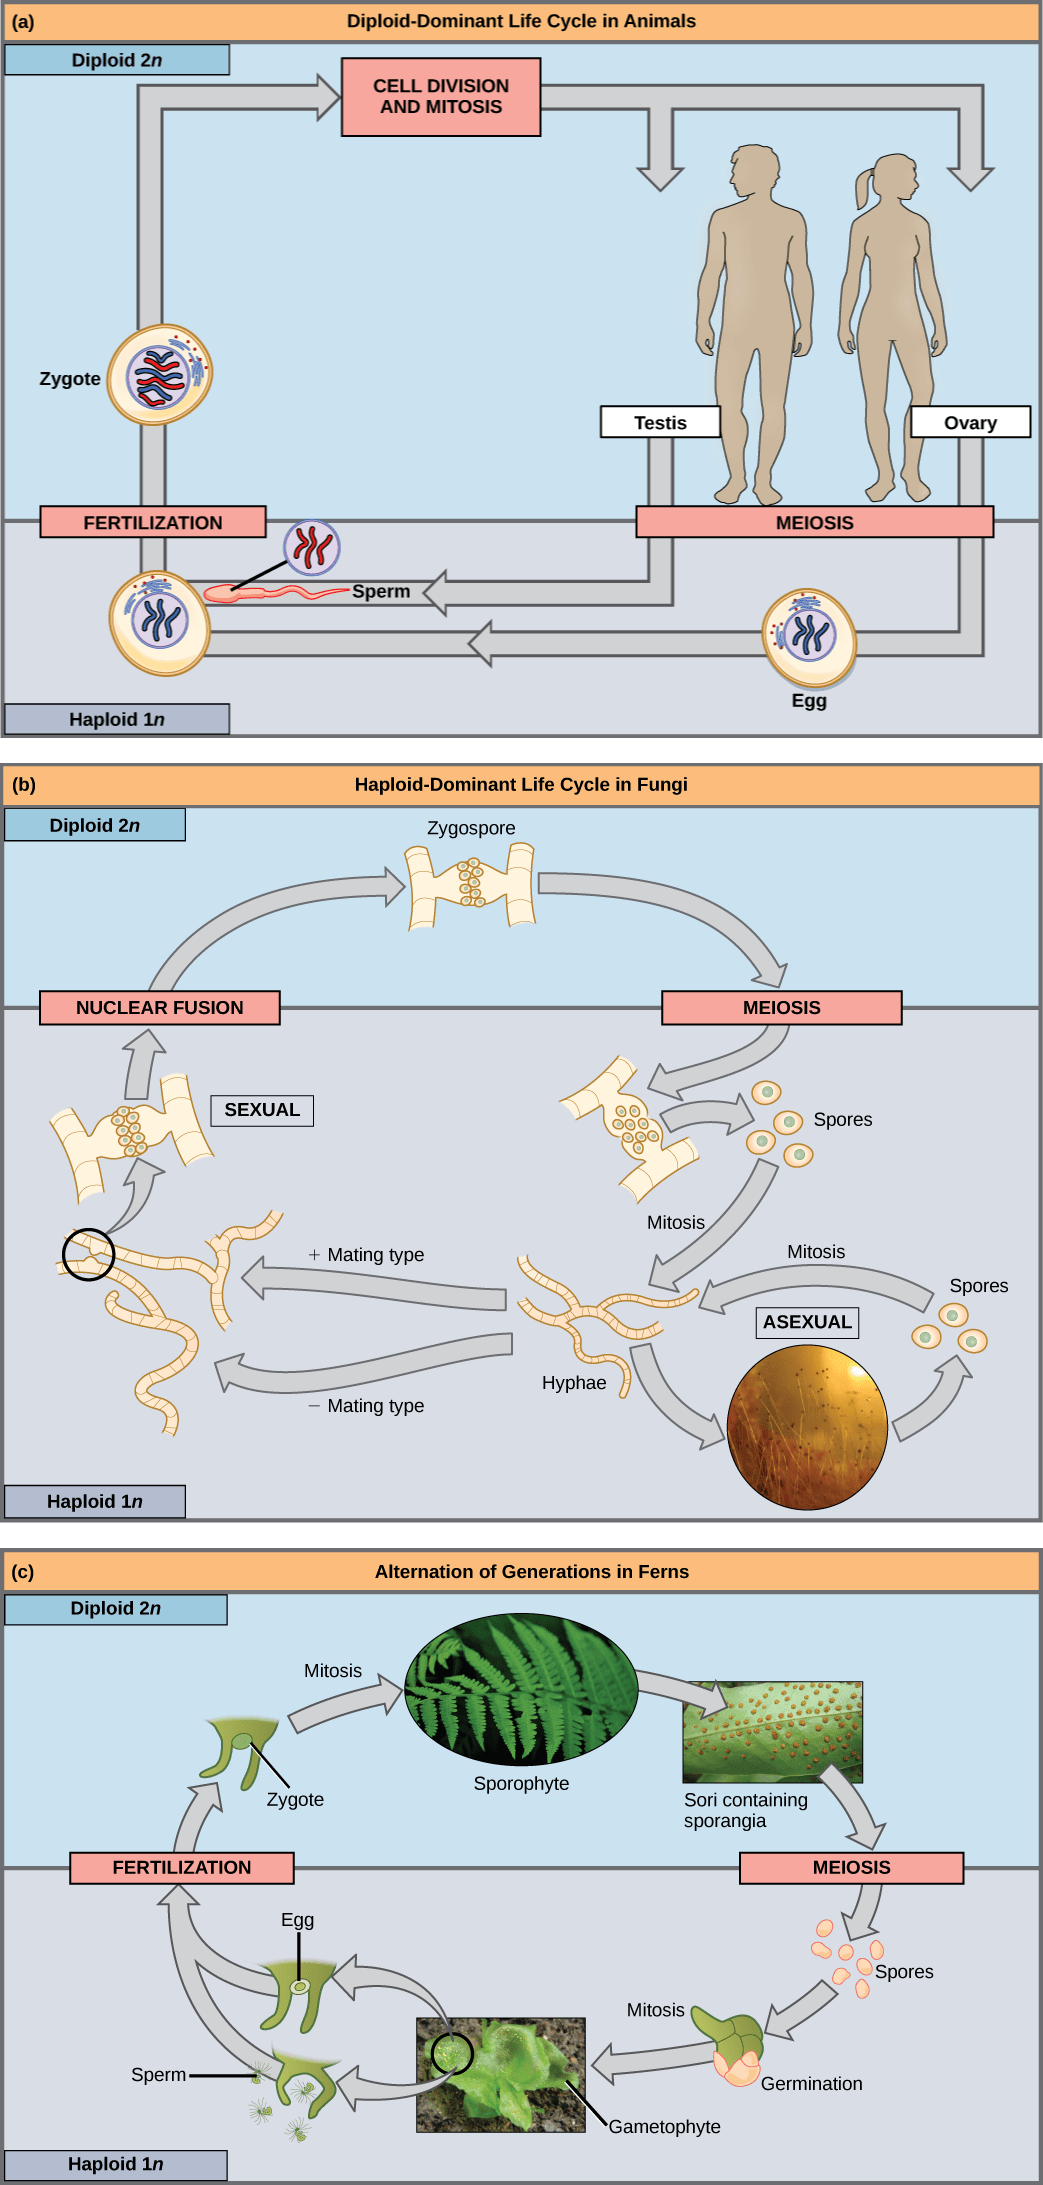 Part a shows the life cycle of animals. Through meiosis, adult males produce haploid (1n) sperm, and adult females produce haploid eggs. Upon fertilization, a diploid (2n) zygote forms, which grows into an adult through mitosis and cell division. Part b shows the life cycle of fungi. In fungi, the diploid (2n) zygospore undergoes meiosis to form haploid (1n) spores. Mitosis of the spores occurs to form hyphae. Hyphae can undergo asexual reproduction to form more spores, or they form plus and minus mating types that undergo nuclear fusion to form a zygospore. Part c shows the life cycle of fern plants. The diploid (2n) zygote undergoes mitosis to produce the sphorophyte, which is the familiar, leafy plant. Sporangia form on the underside of the leaves of the sphorophyte. Sporangia undergo meiosis to form haploid (1n) spores. The spores germinate and undergo mitosis to form a multicellular, leafy gametophyte. The gametophyte produces eggs and sperm. Upon fertilization, the egg and sperm form a diploid zygote